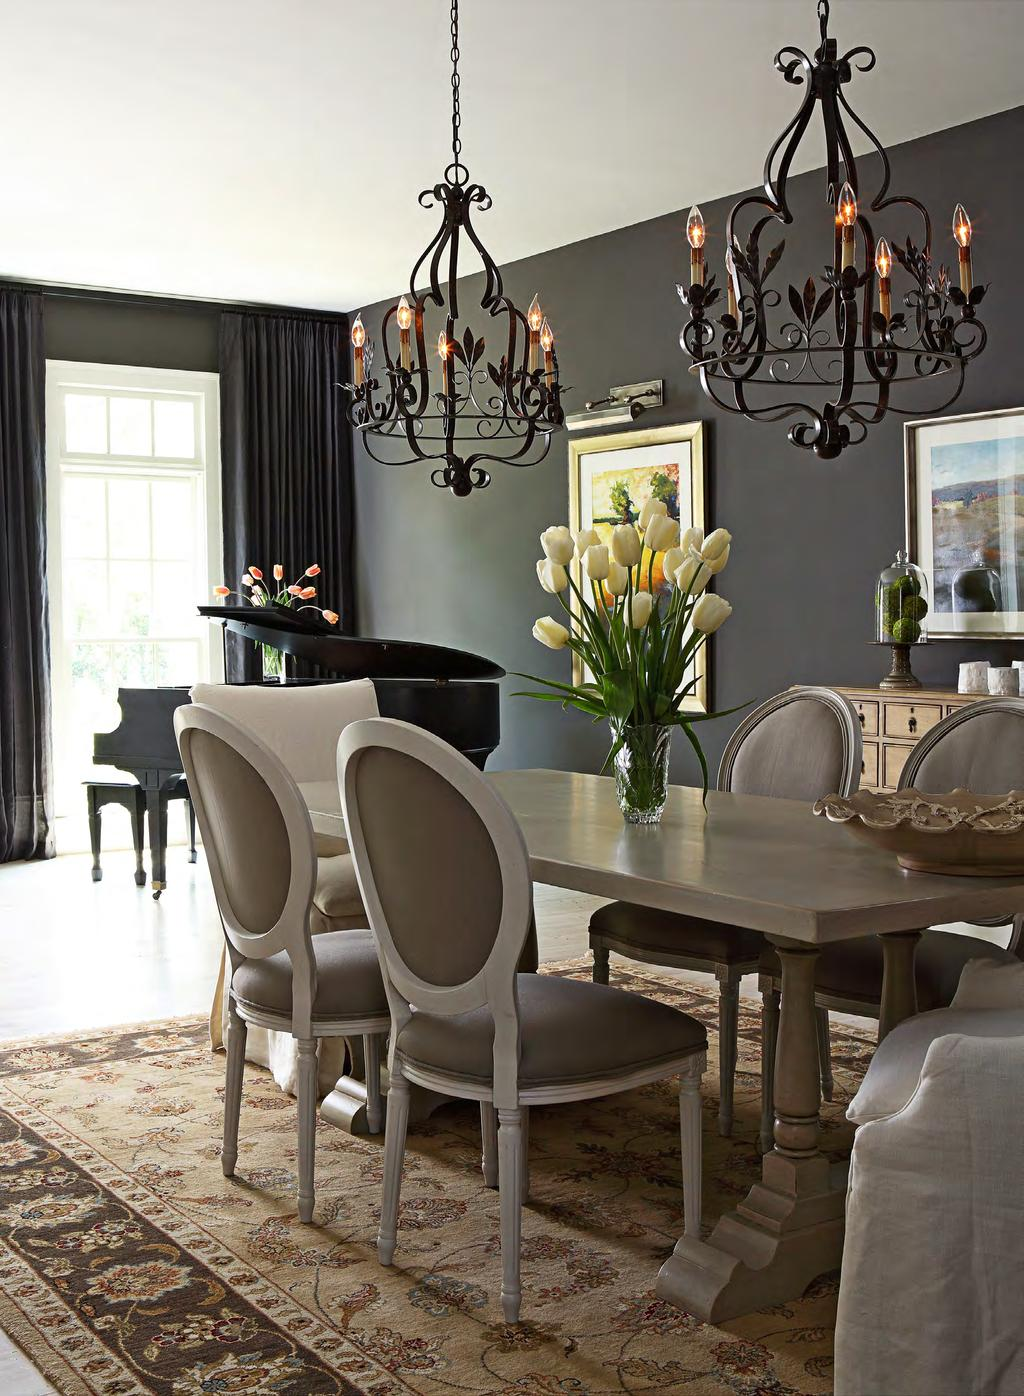 Hirsch chose charcoal-hue paint as a sophisticated backdrop to the dining and music area. It s important to choose a gray that s not too bluish or purple, she says. This one is a true charcoal.